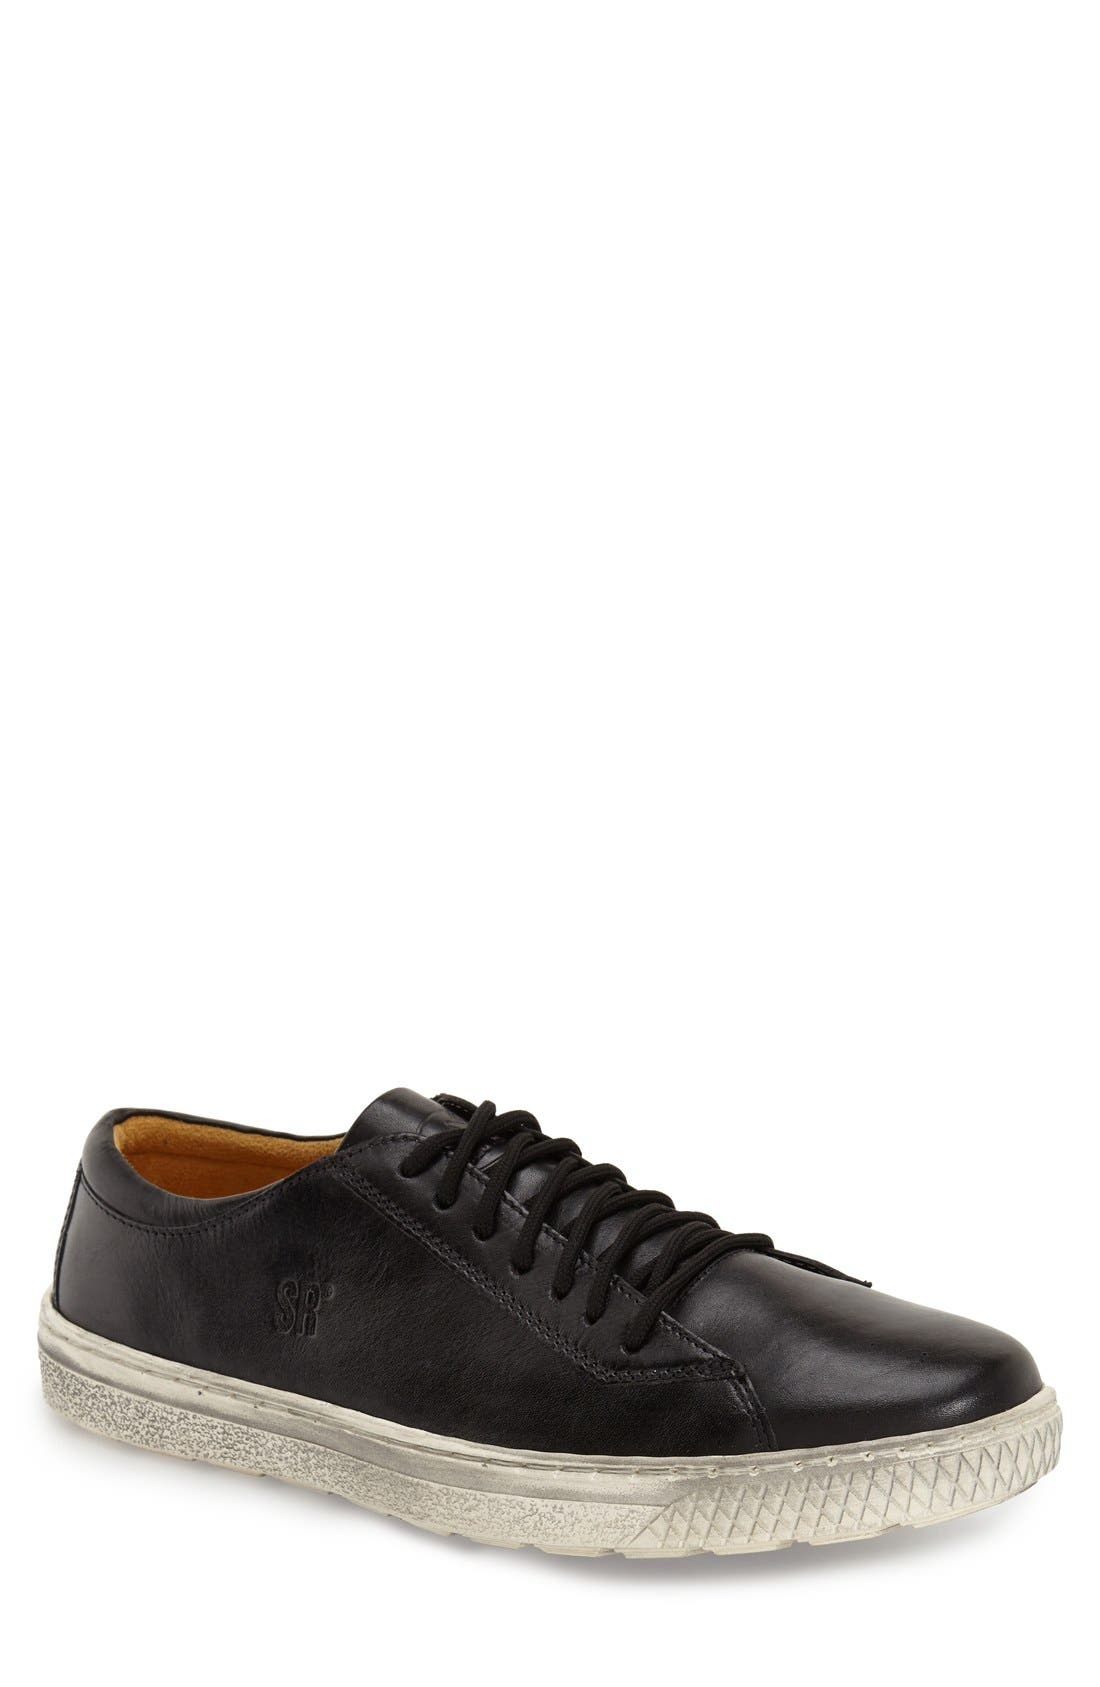 'Rolly' Sneaker,                         Main,                         color, 001